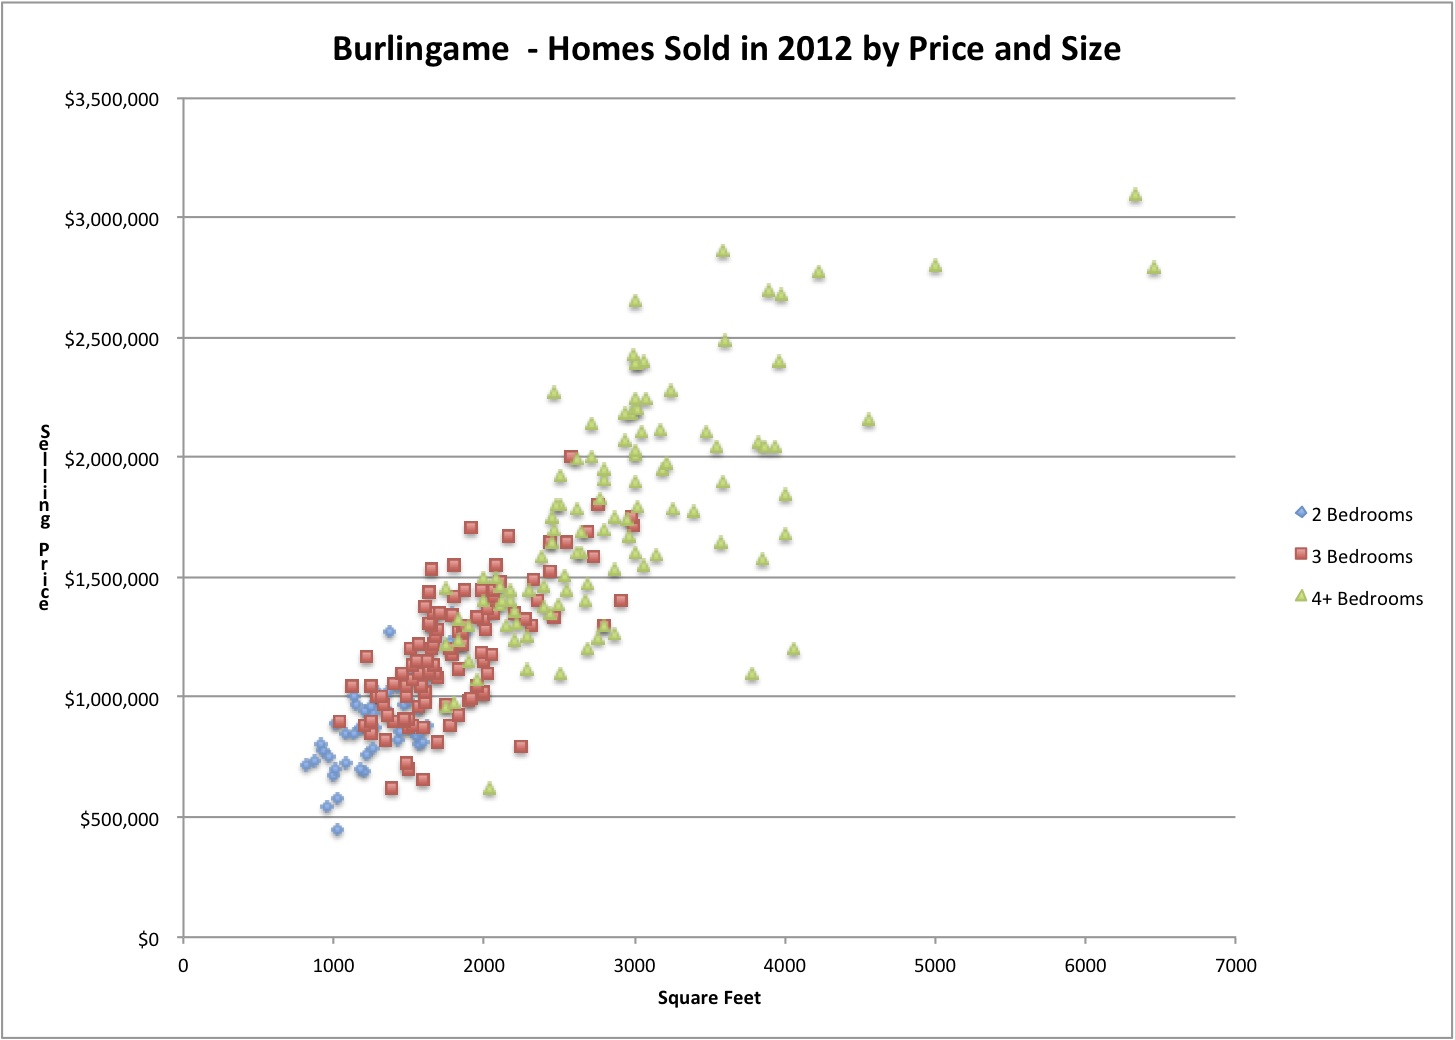 Burlingame Home Prices by bedrooms